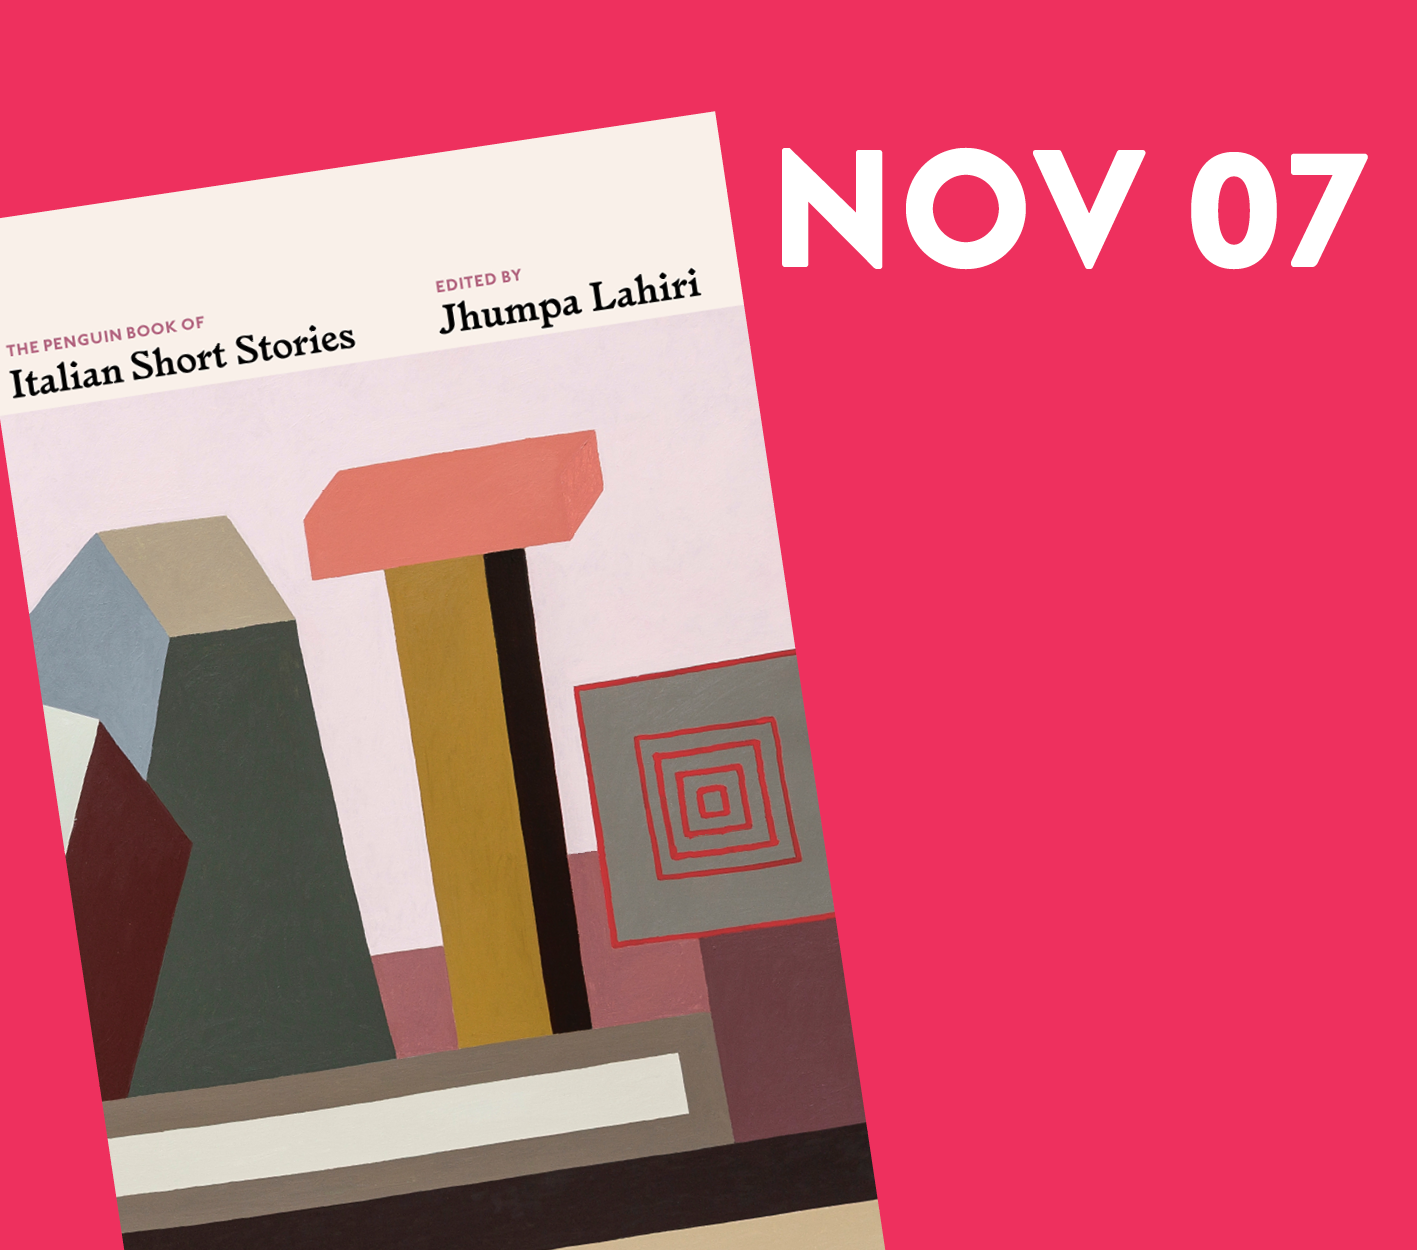 Image for Selected Shorts: The Penguin Book of Italian Short Stories with Jhumpa Lahiri